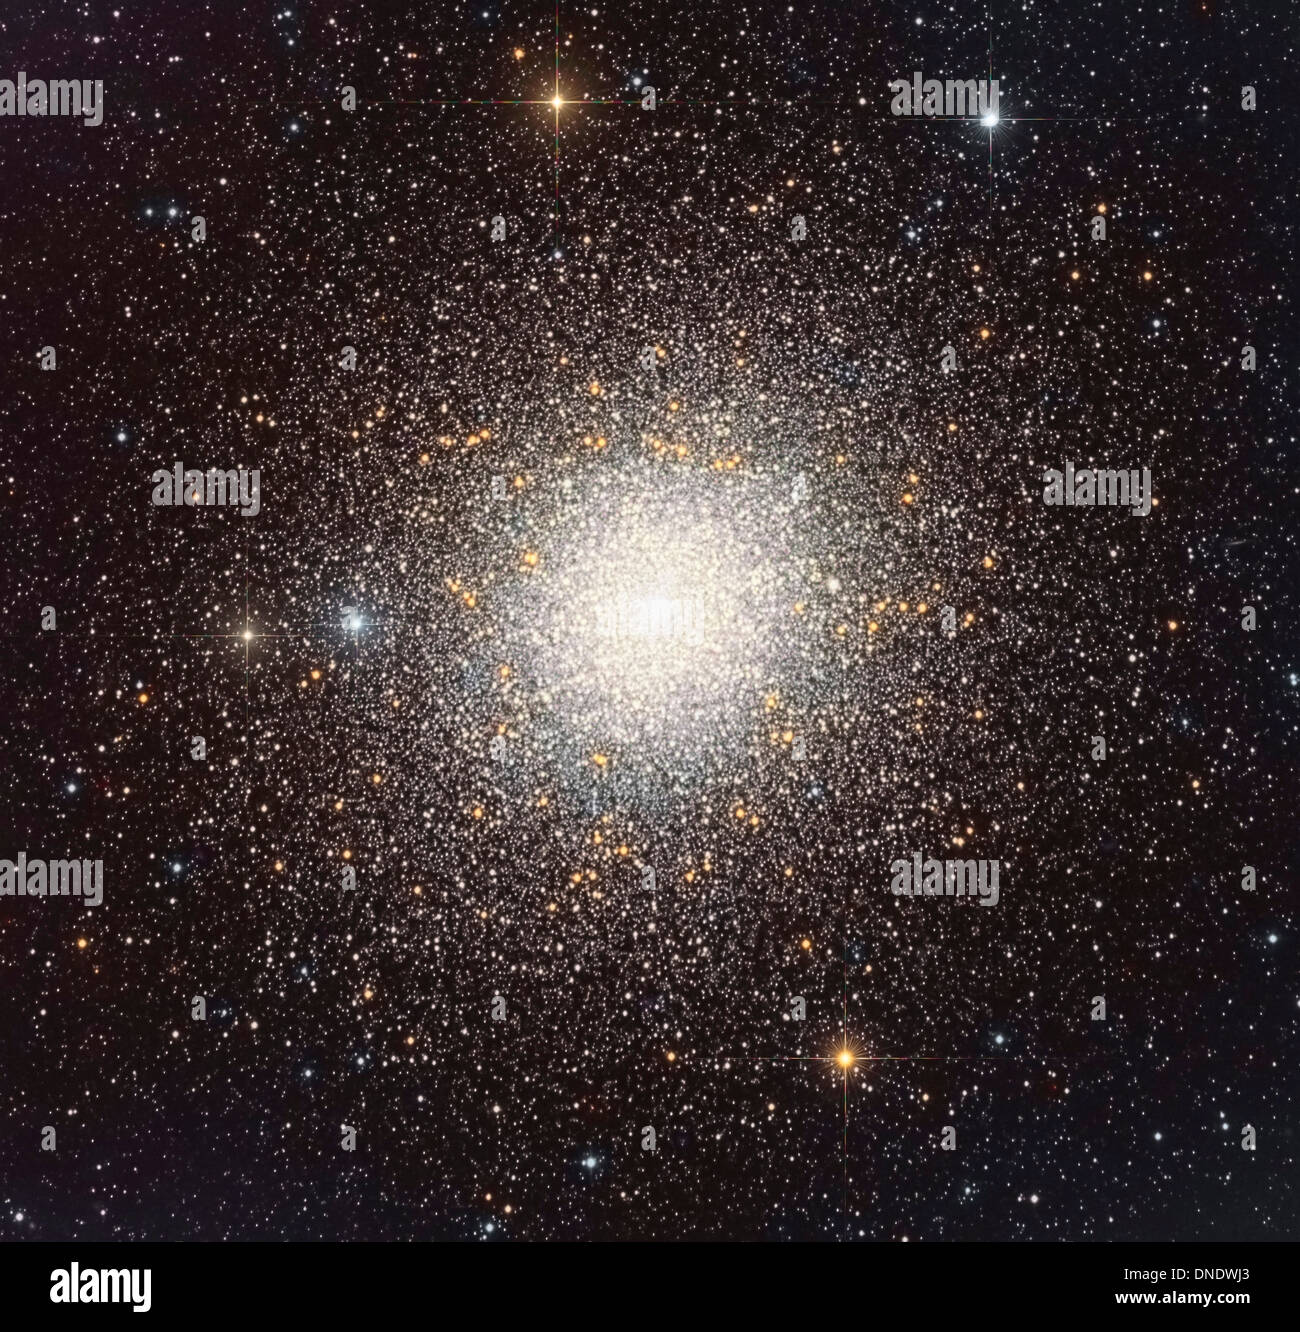 47 Tucanae (NGC 104), a globular cluster located in the constellation Tucana. - Stock Image